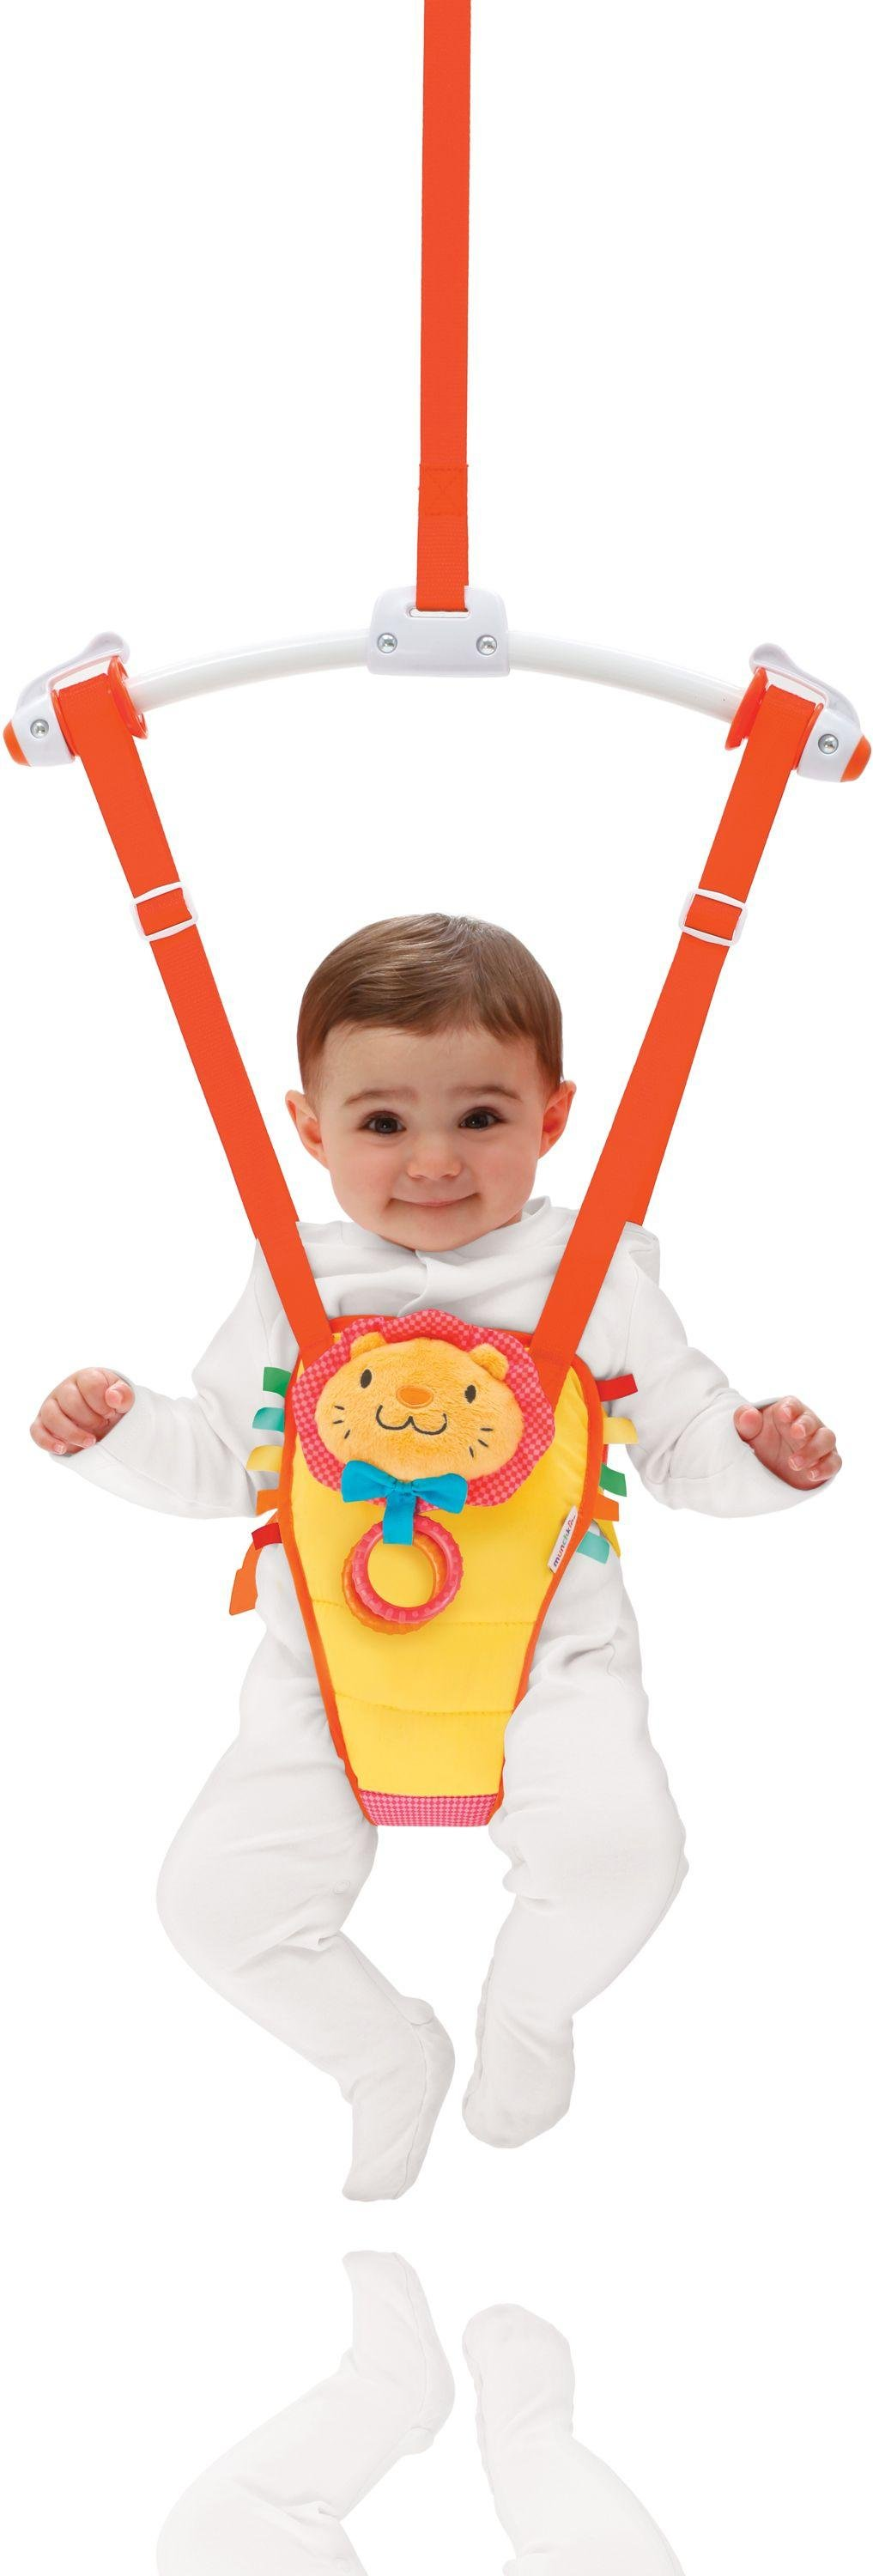 Image of Munchkin Bounce and Play Bouncer.